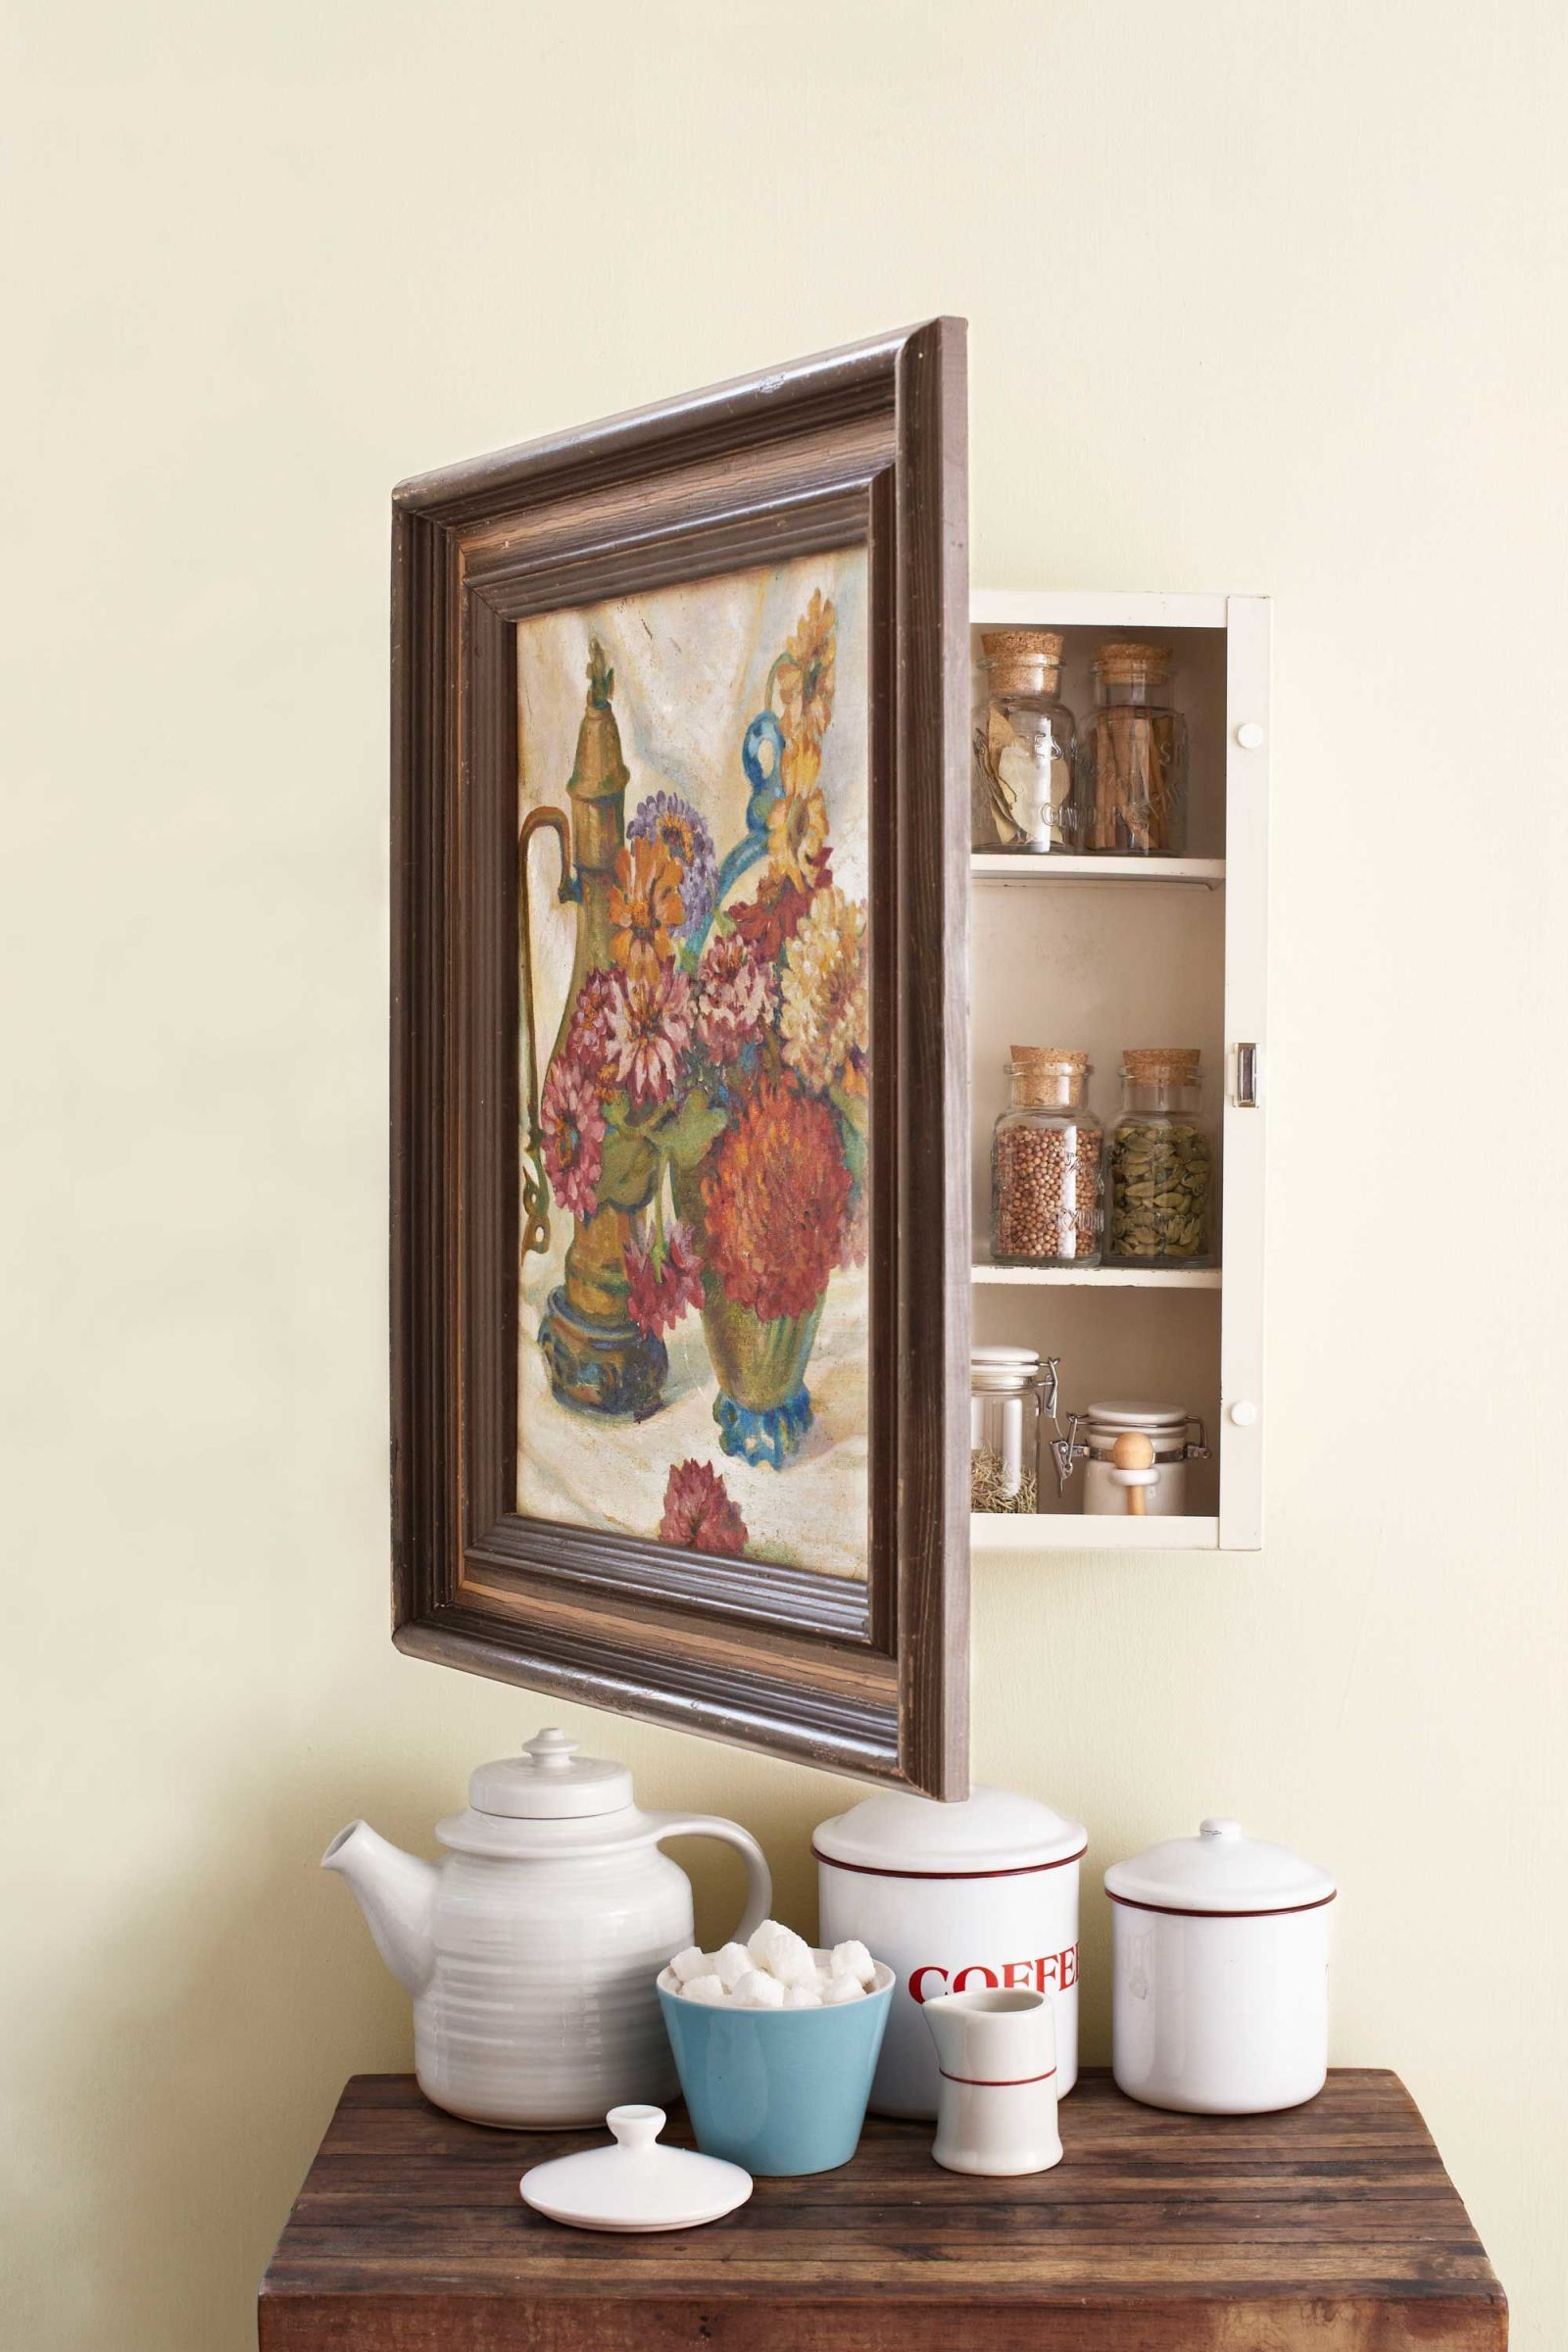 Turn A Thrifted Piece Of Art Into A Useful Storage Space. What A Neat  Organization Idea And It Is Inexpensive Too!